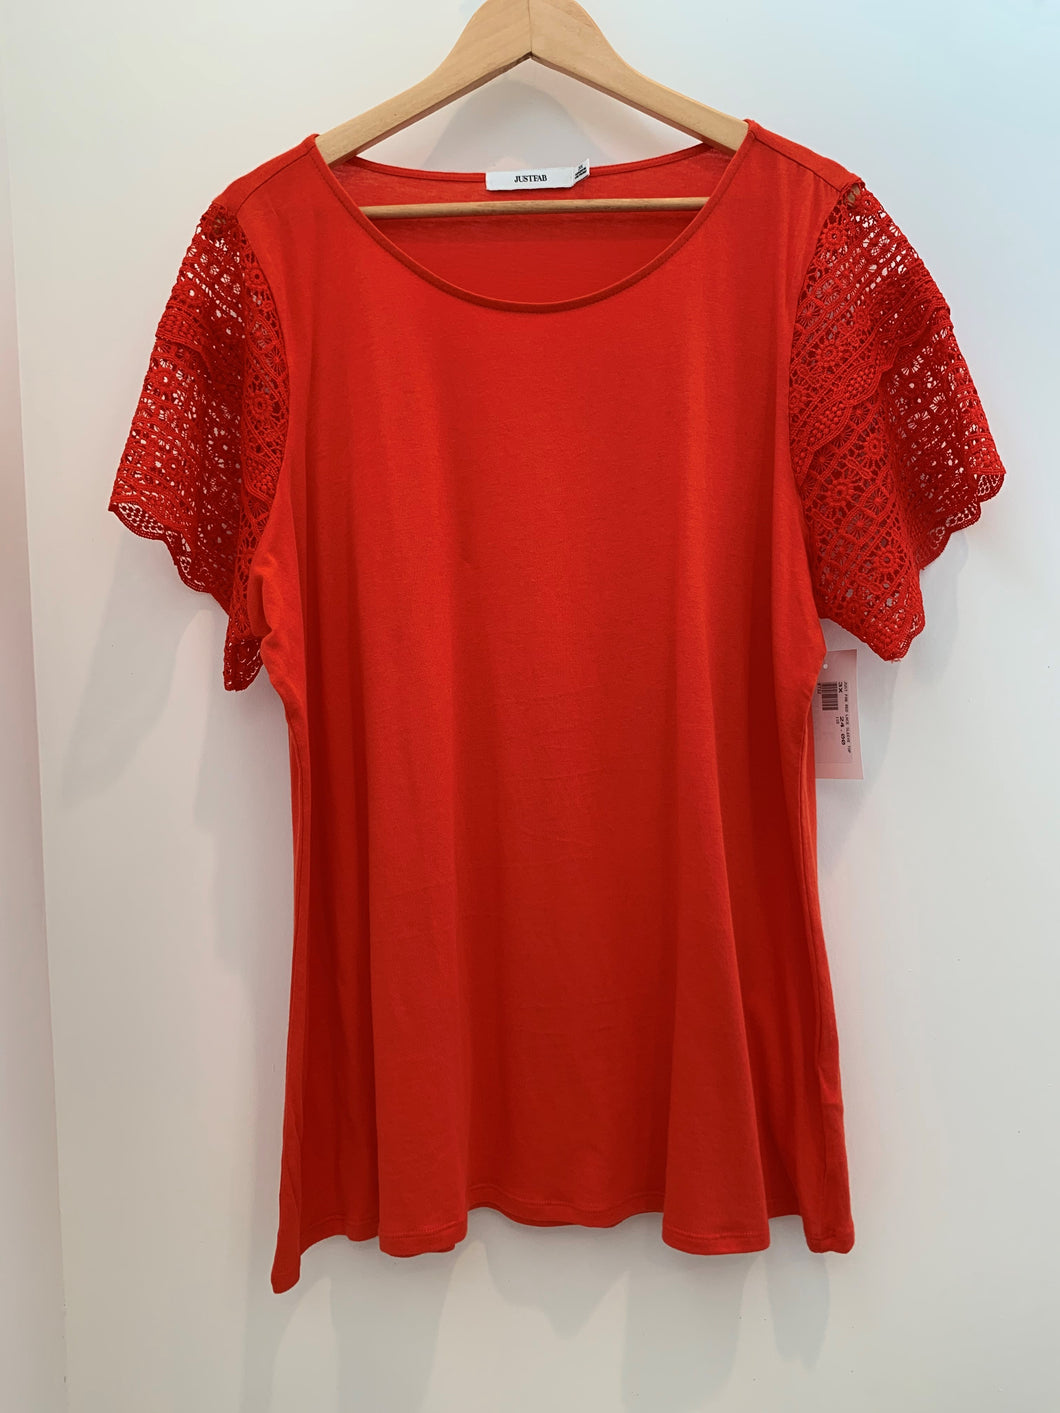 Just Fab Red Lace Sleeve Top - Size 3X